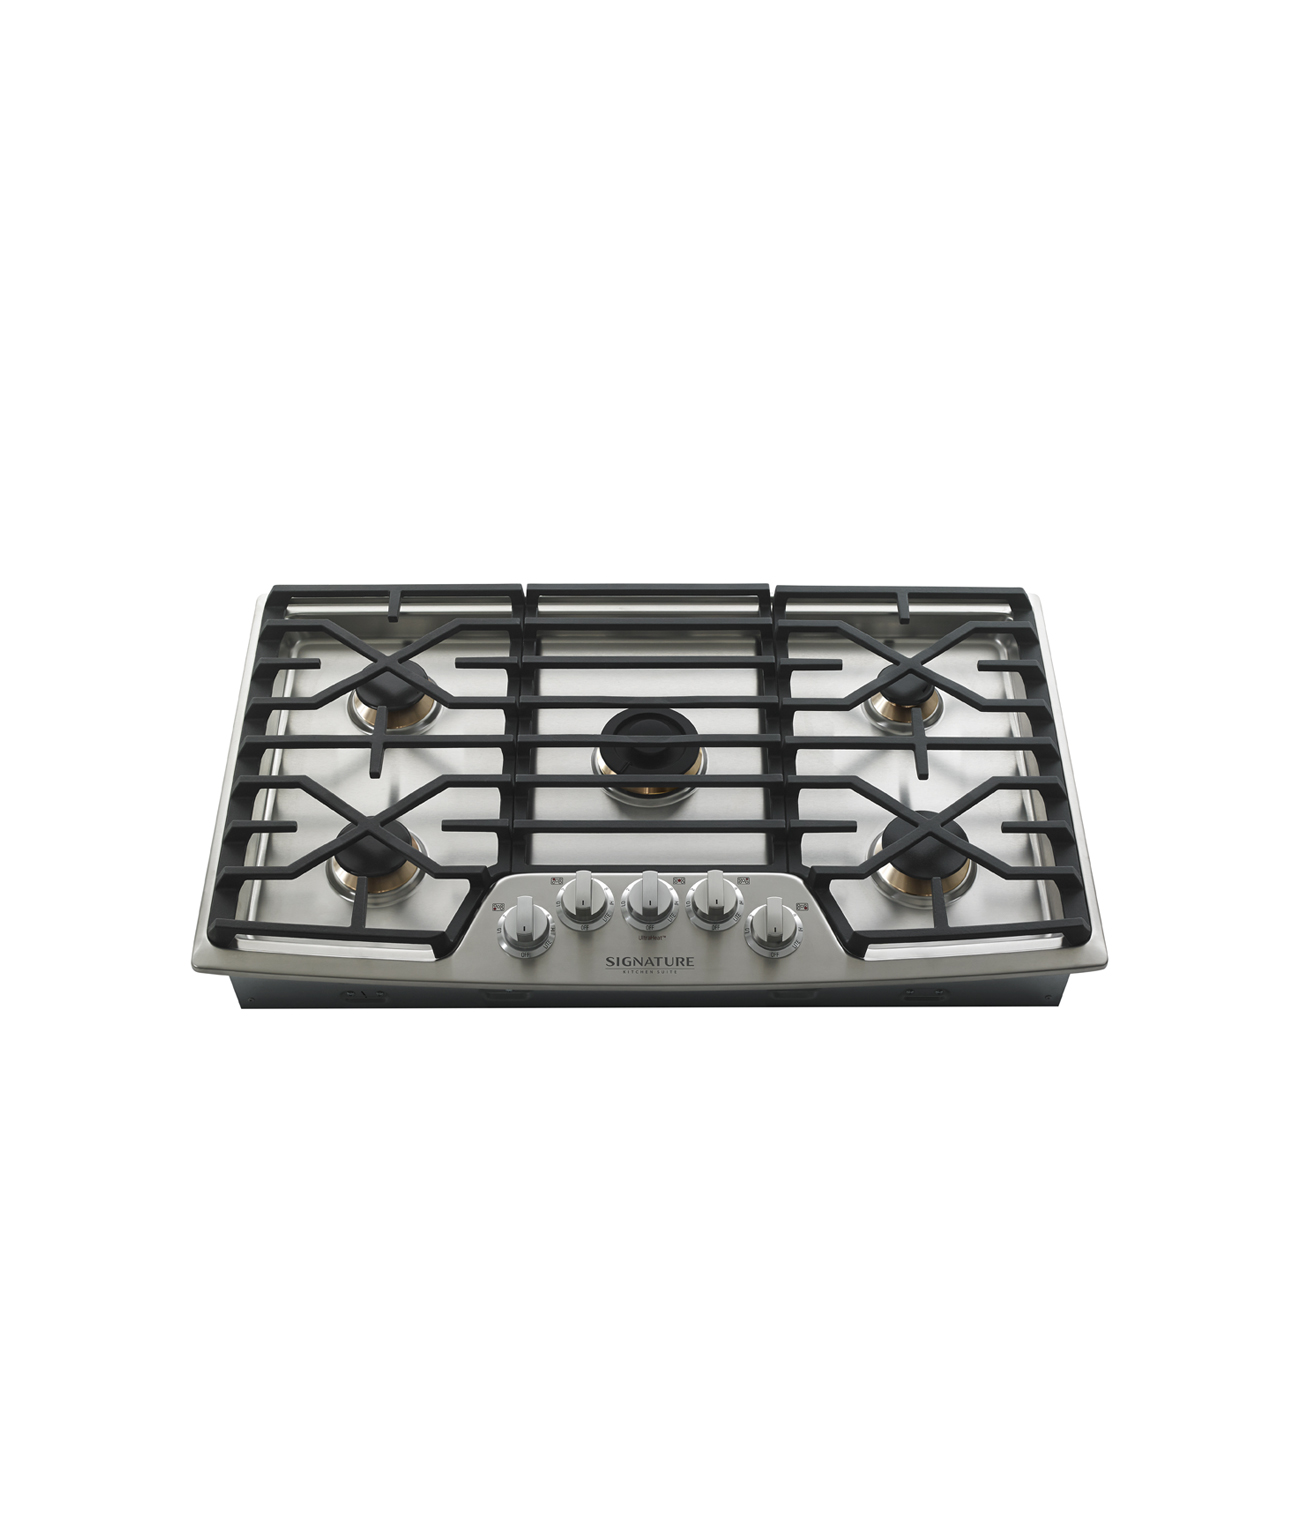 30-inch Gas Cooktop from Signature Kitchen Suite